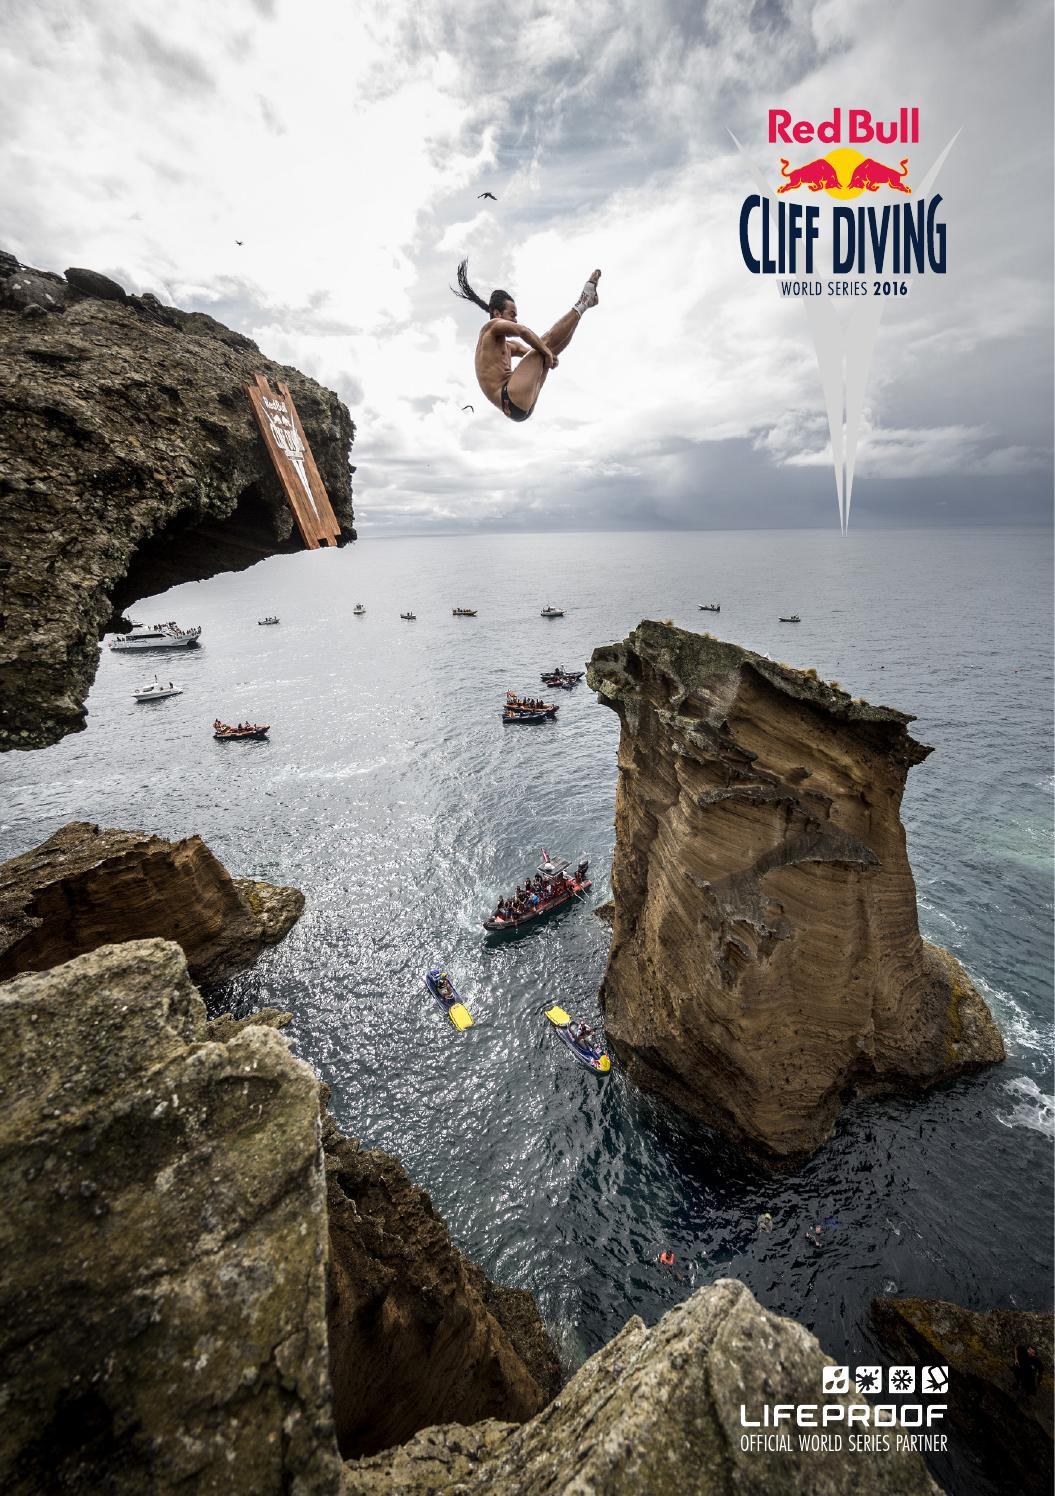 Red Bull Cliff Diving Height : cliff, diving, height, Cliff, Diving, World, Series, Media, House, Issuu